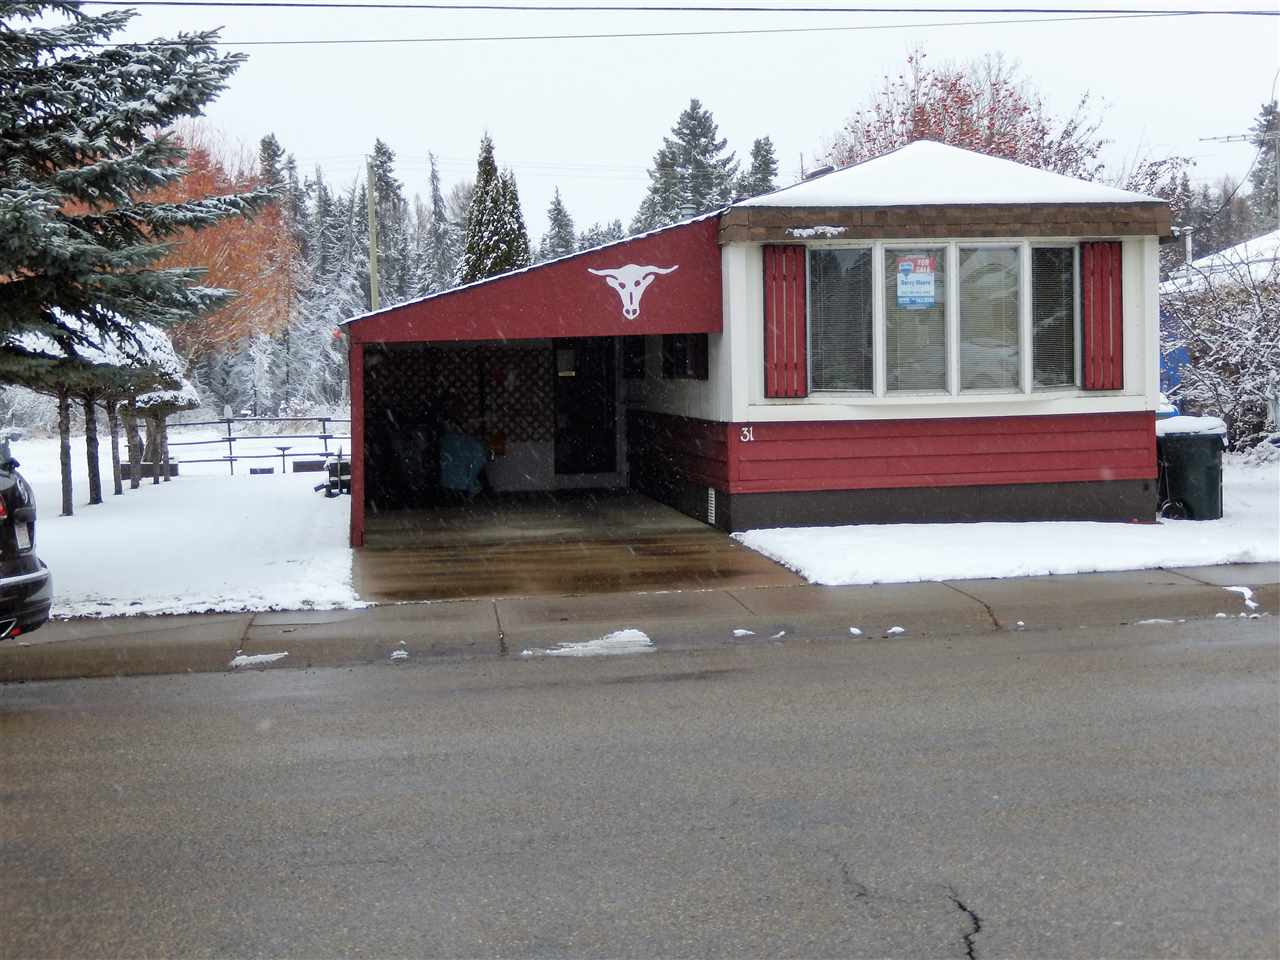 EXTEMELY WELL CARED FOR HOME BACKING ONTO GREENSPACE!!  This home has been loved and it shows!  The ATTACHED CARPORT is nicely finished & is a good size (11x22 deep).  Behind that is the PORCH (11 x 13 ft) unheated.....it serves as a great sitting room in the warmer weather.  The home has 3 bedrs & a spacious bathroom.  The kitchen has an ajoining LAUNDRY ROOM with STORAGE & PANTRY ....DINING AREA has BUILT IN CUPBOARD and the LIVING ROOM sits at the front of the home with a BIG FRONT WINDOW for lots of natural light.  Recent upgrades include the FURNACE with CENTRAL AIR CONDITIONING in 2012; SHINGLES 2016; ALL FLOORING 2014.  The YARD has wonderful MANICURED TREES, GARDEN PLOT, SHED & a small deck off the back door.  PRIVACY is obvious cause it all backs onto an open greenspace and the BIKING/WALKING TRAIL SYSTEM behind that.  Mobile City is a great place to live and it is walking distance to many amenities.